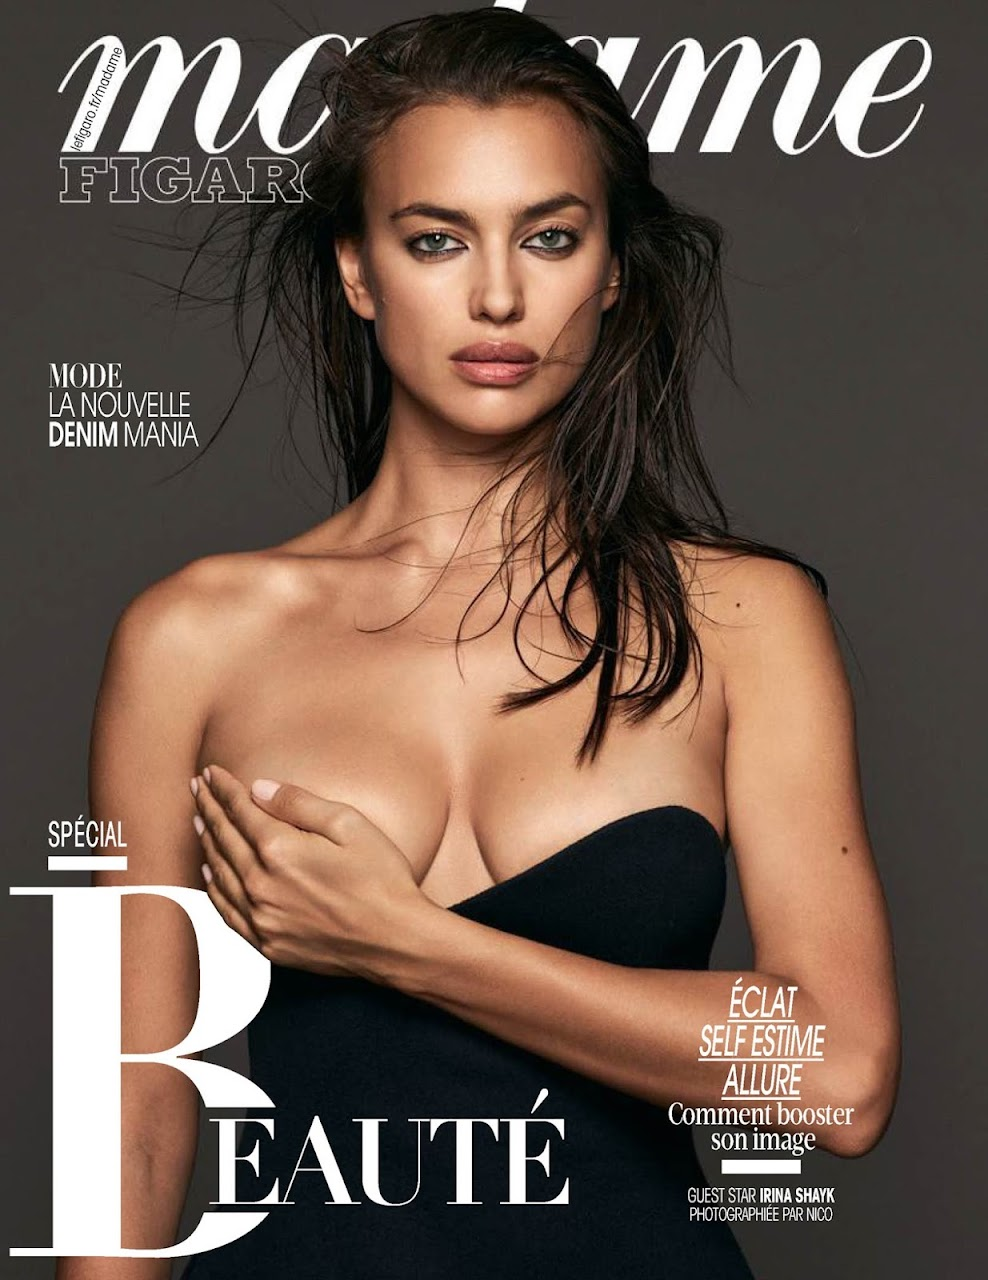 Irina Shayk – What is the Mysterious Attraction of the Vagina?